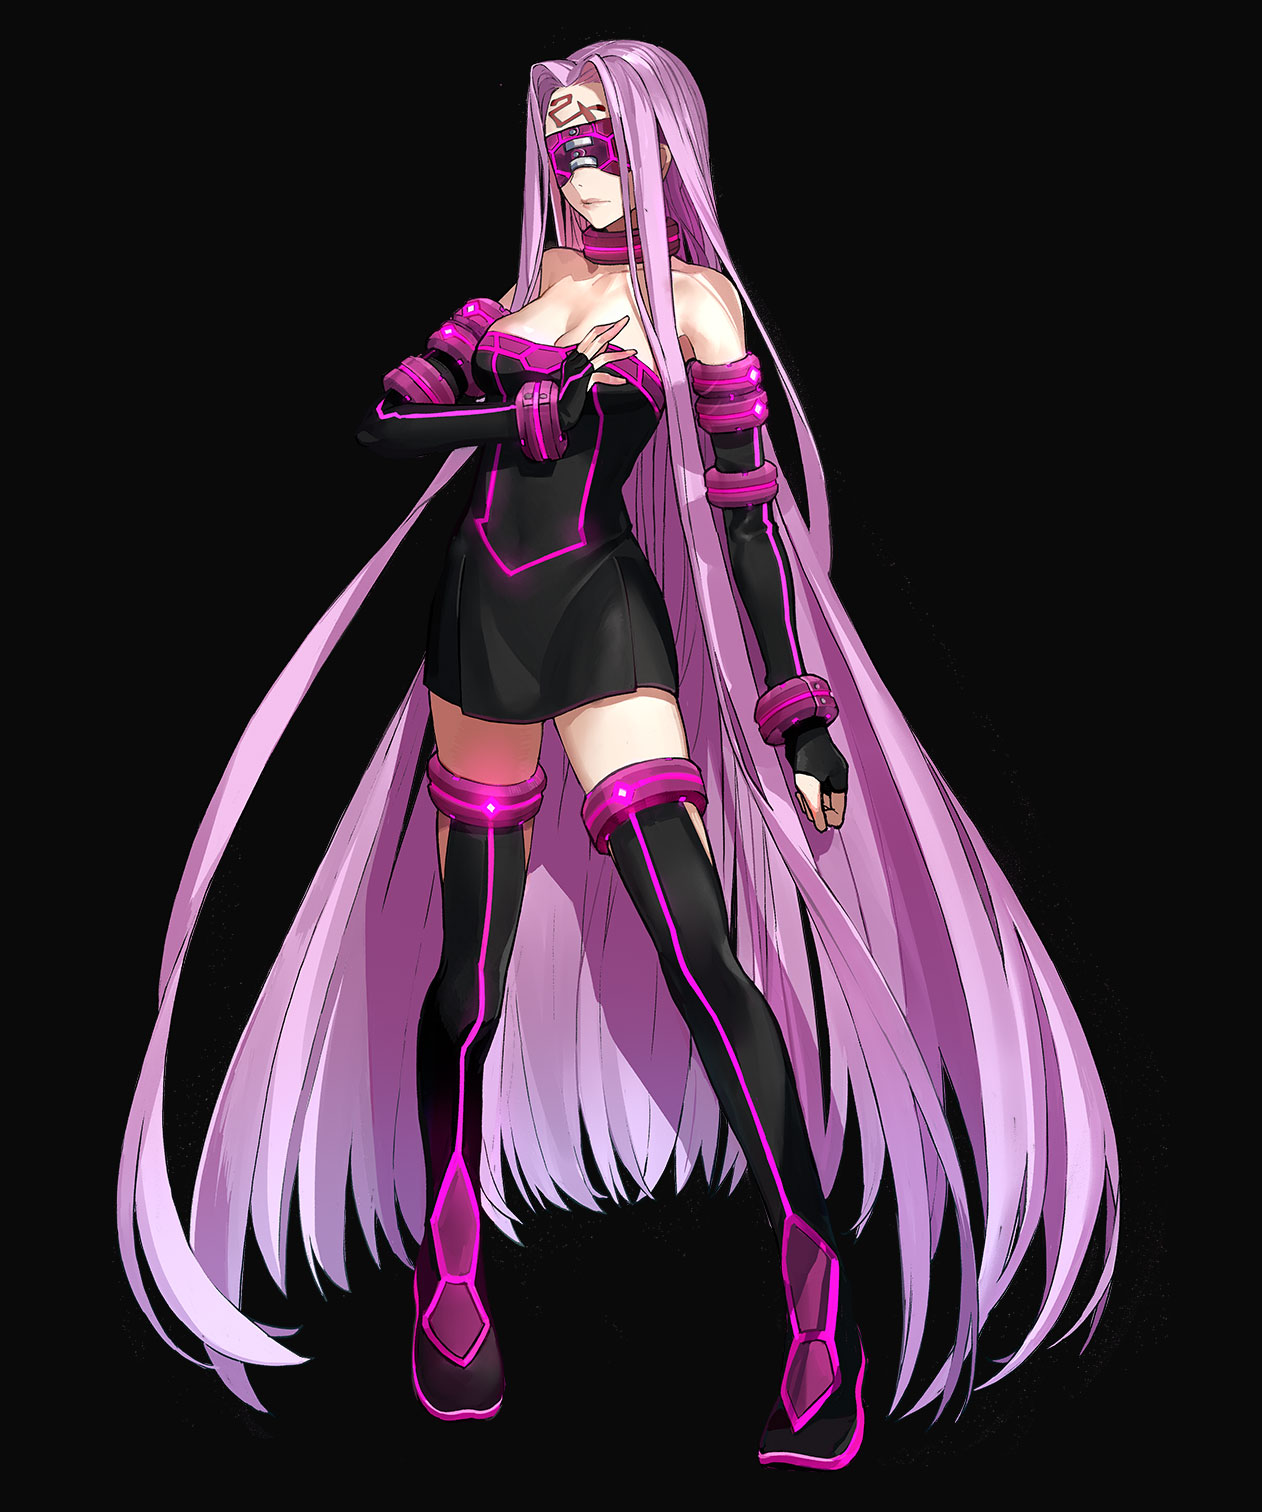 Fate/EXTELLA: The Umbral Star - Medusa